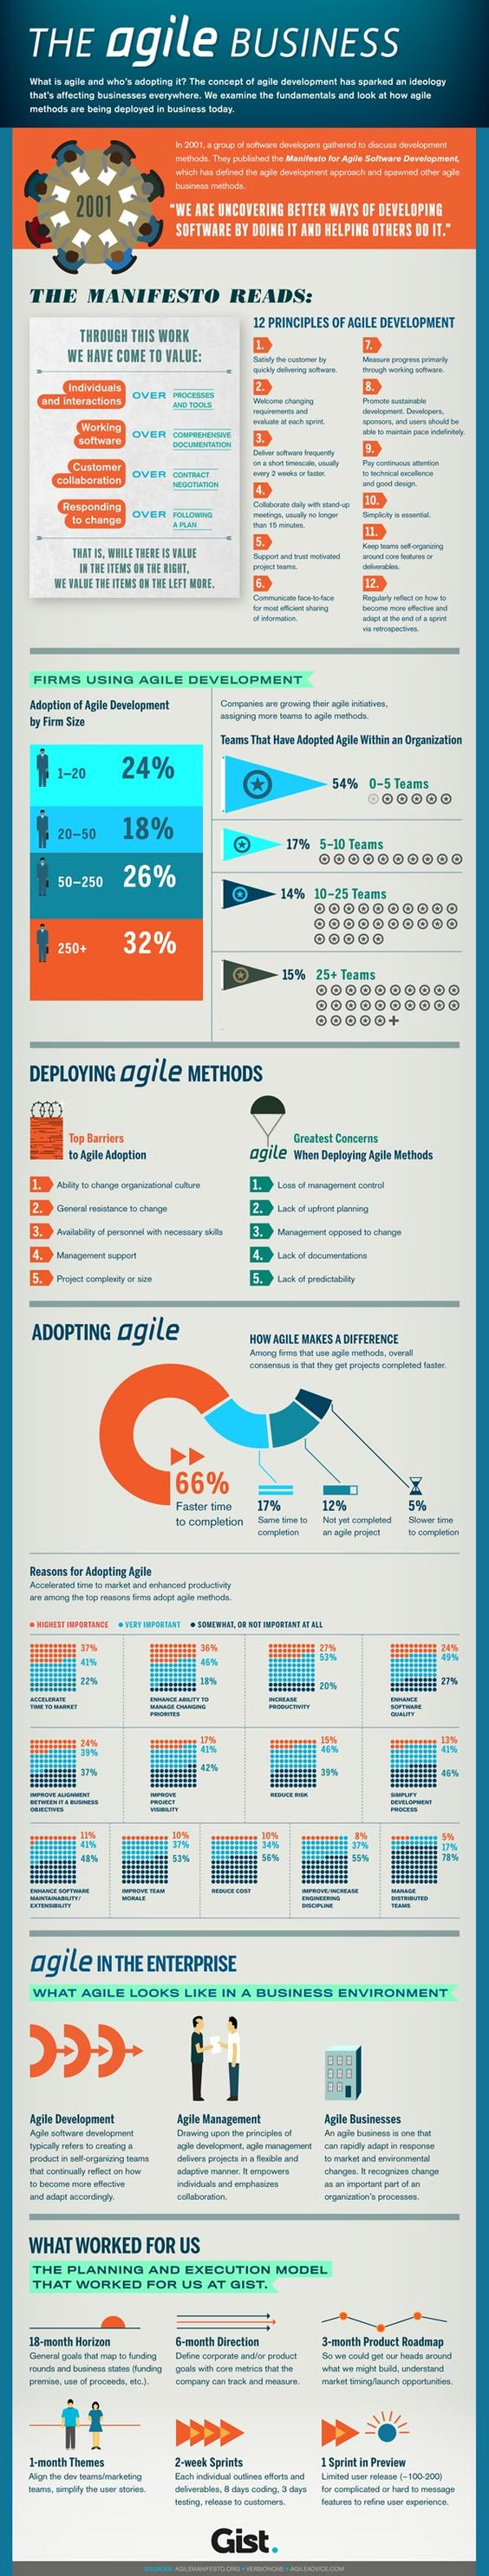 The agile business - not exactly agile marketing, but a good infographic to have around as you develop your agile marketing business.